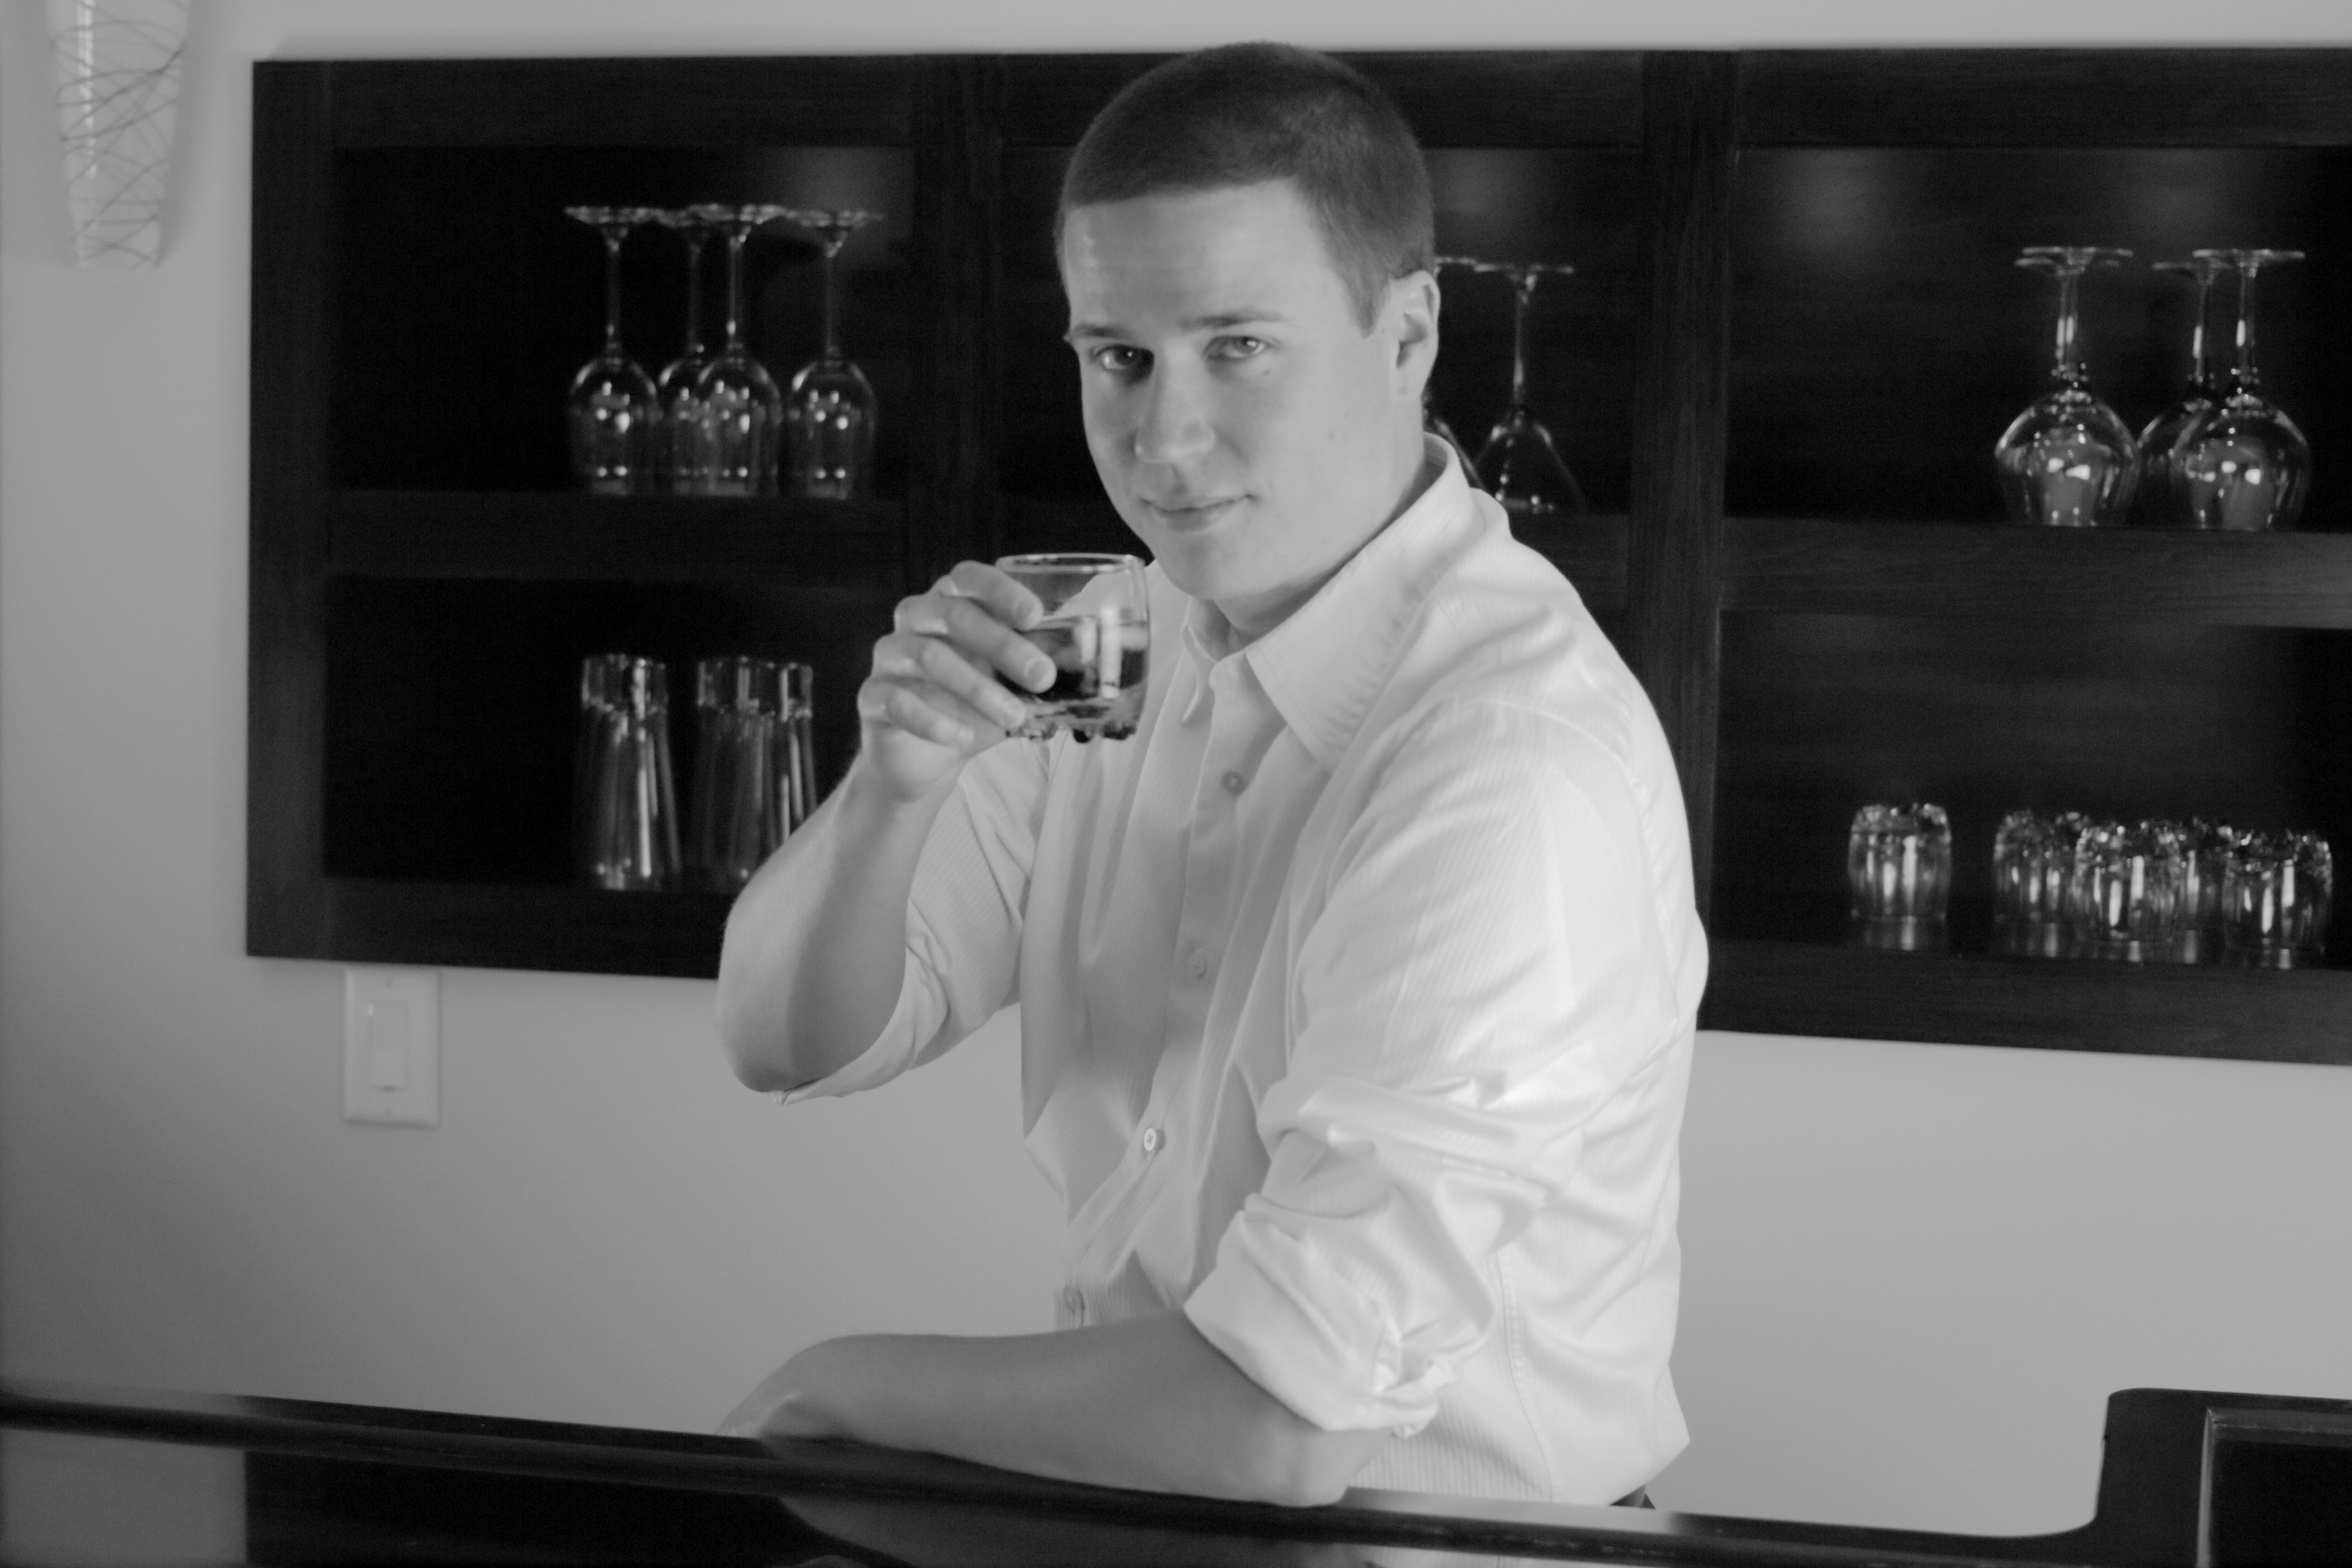 The author stands behind a bar wearing a formal white shirt  				with the collar unbuttoned and the sleeves rolled up. As his  				eyes meet the camera, he smirks and hoists a tumbler half full  				of dark liquid.